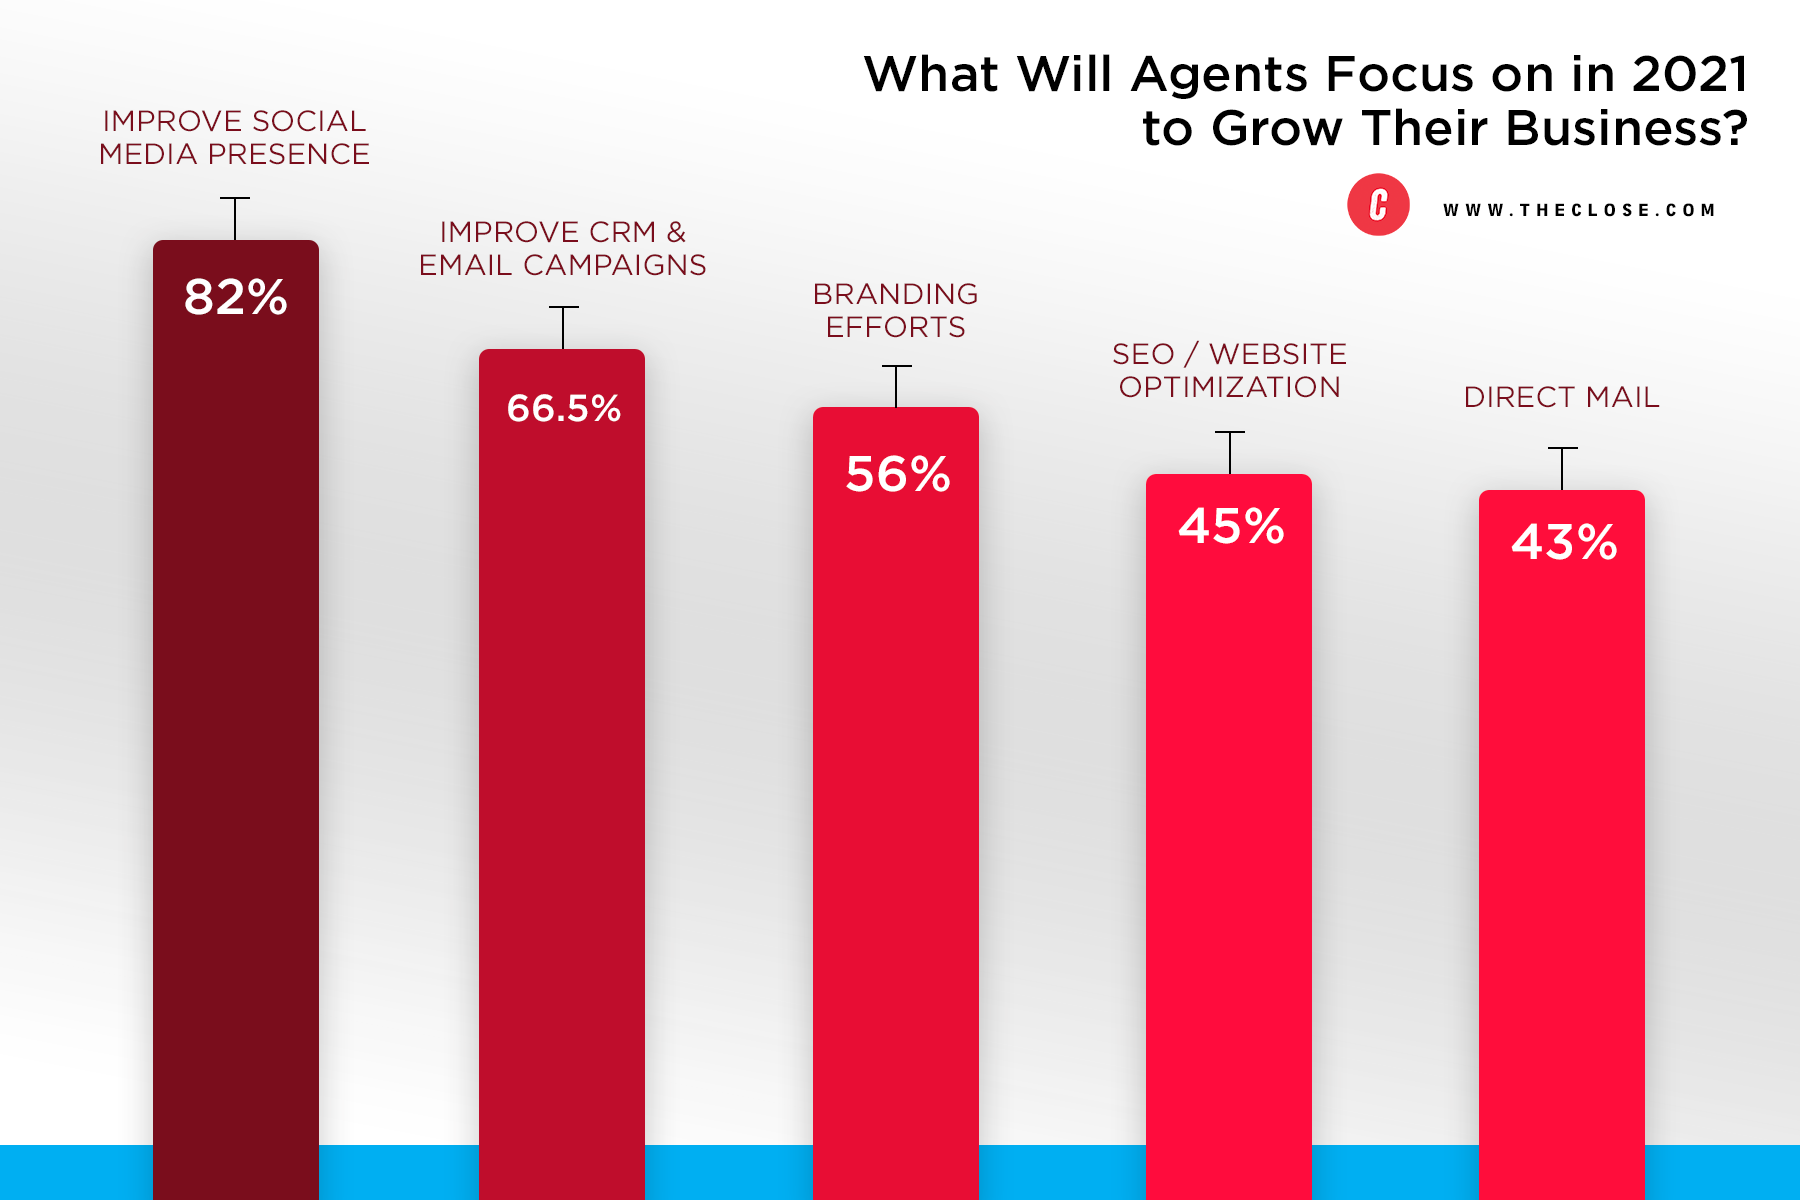 What will real estate agents focus on in 2021 to grow their business? Survey results from TheClose.